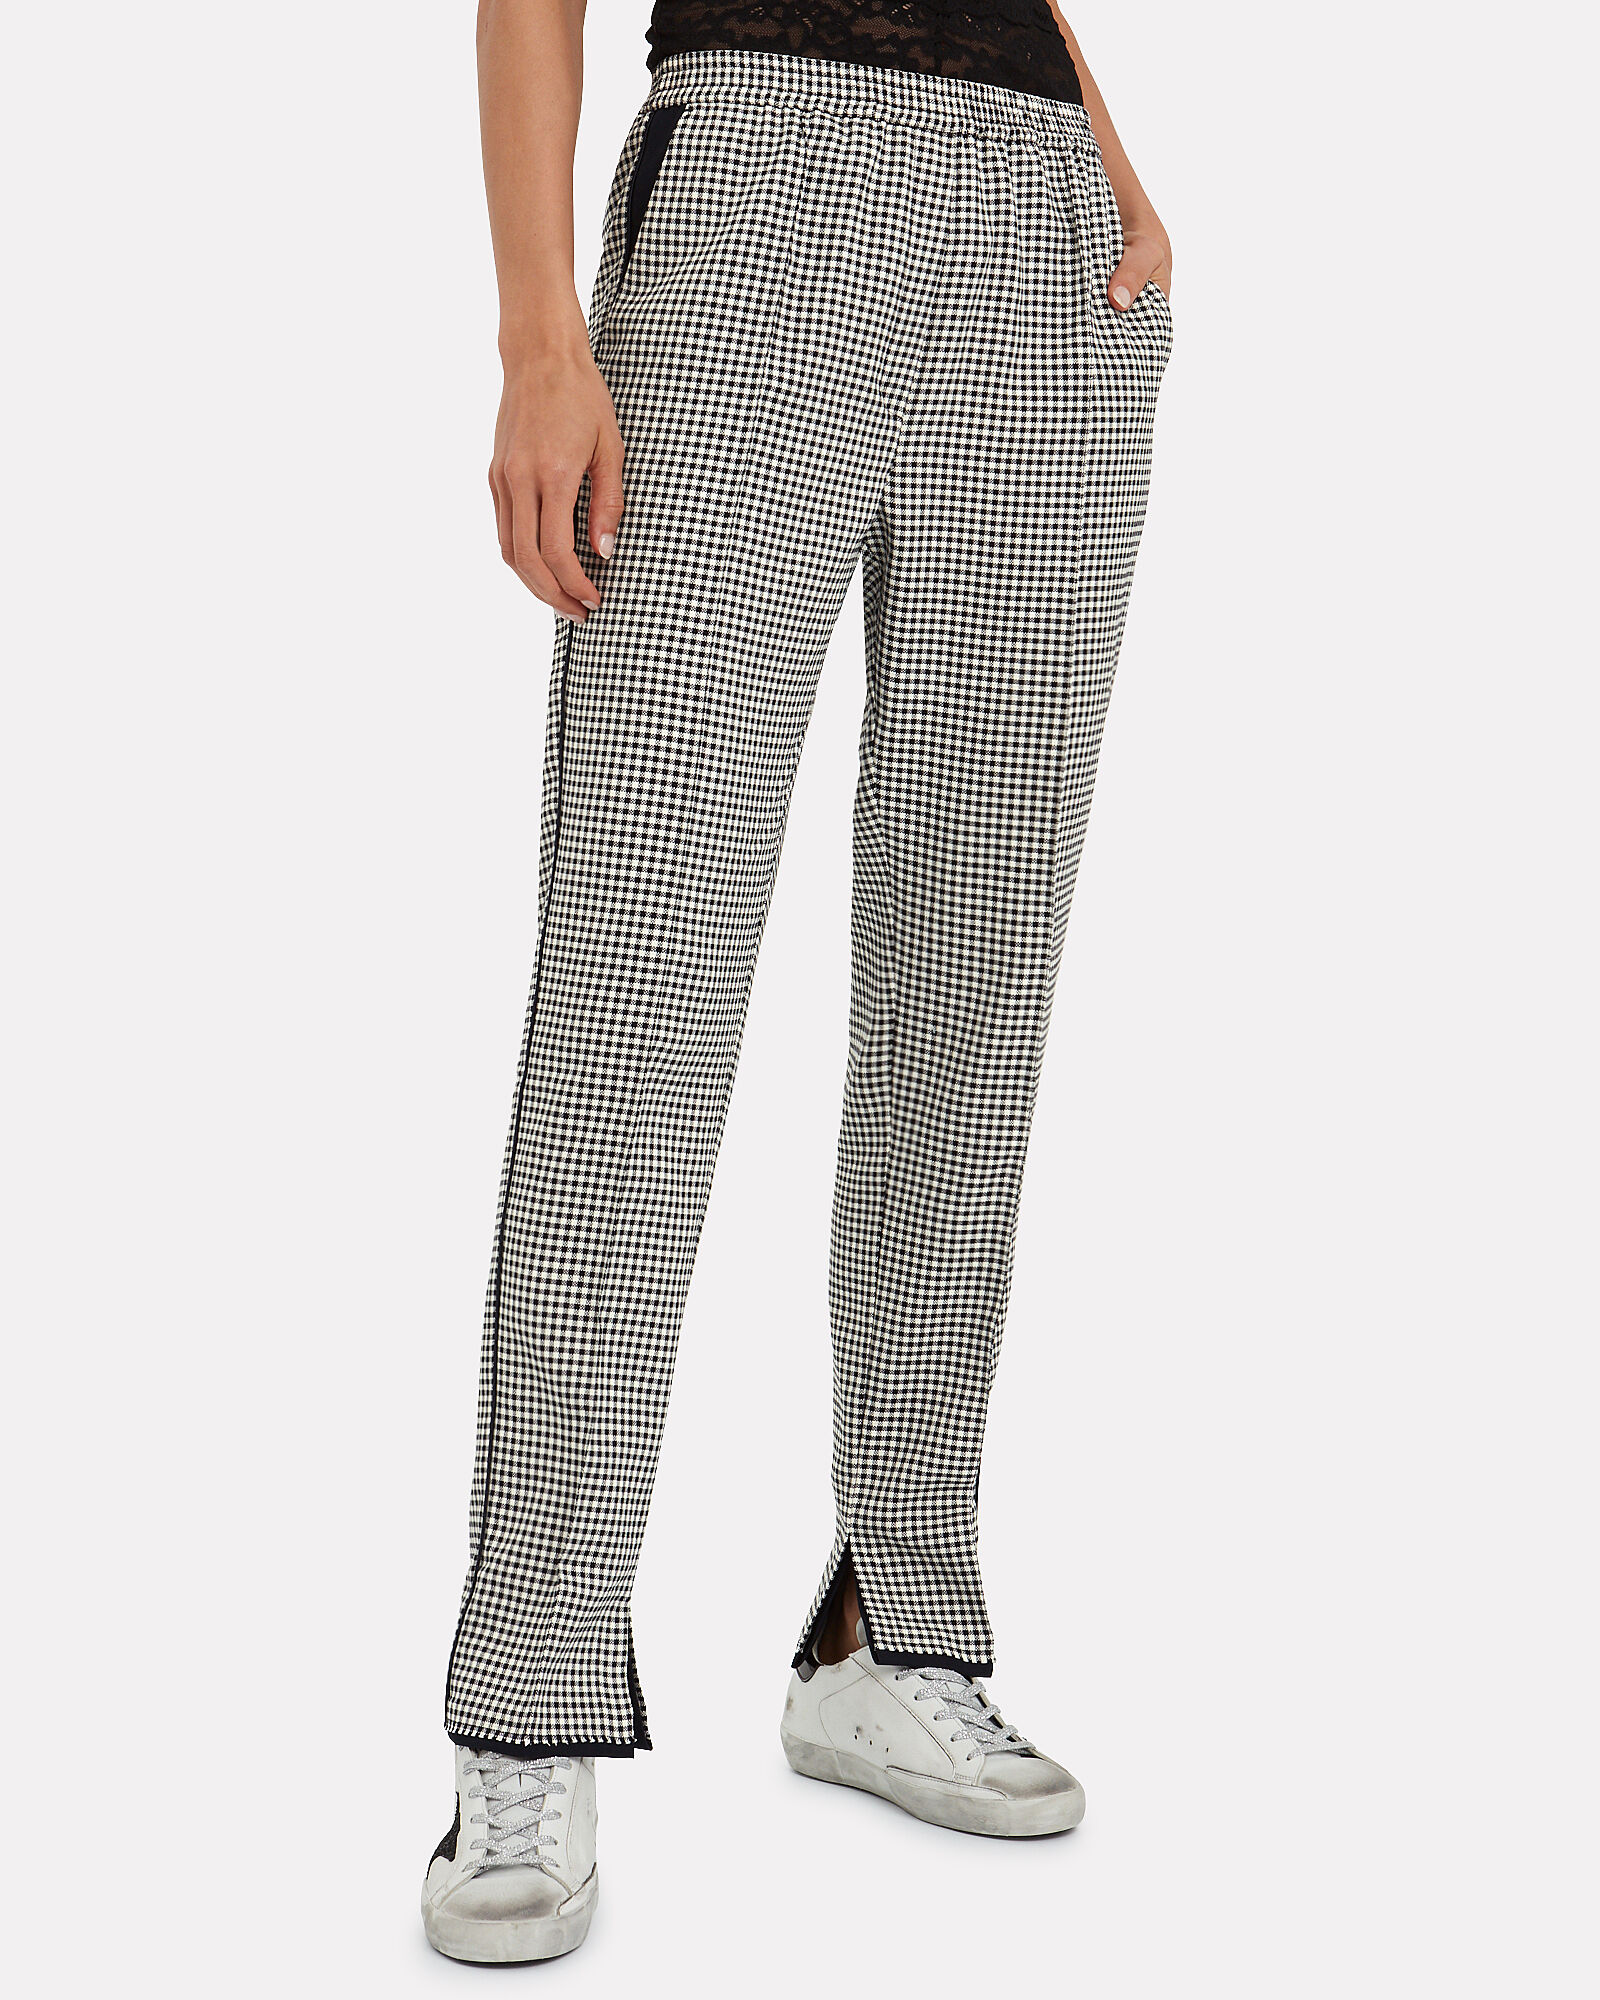 Minori Wool-Cotton Checked Trousers, BLACK/WHITE, hi-res